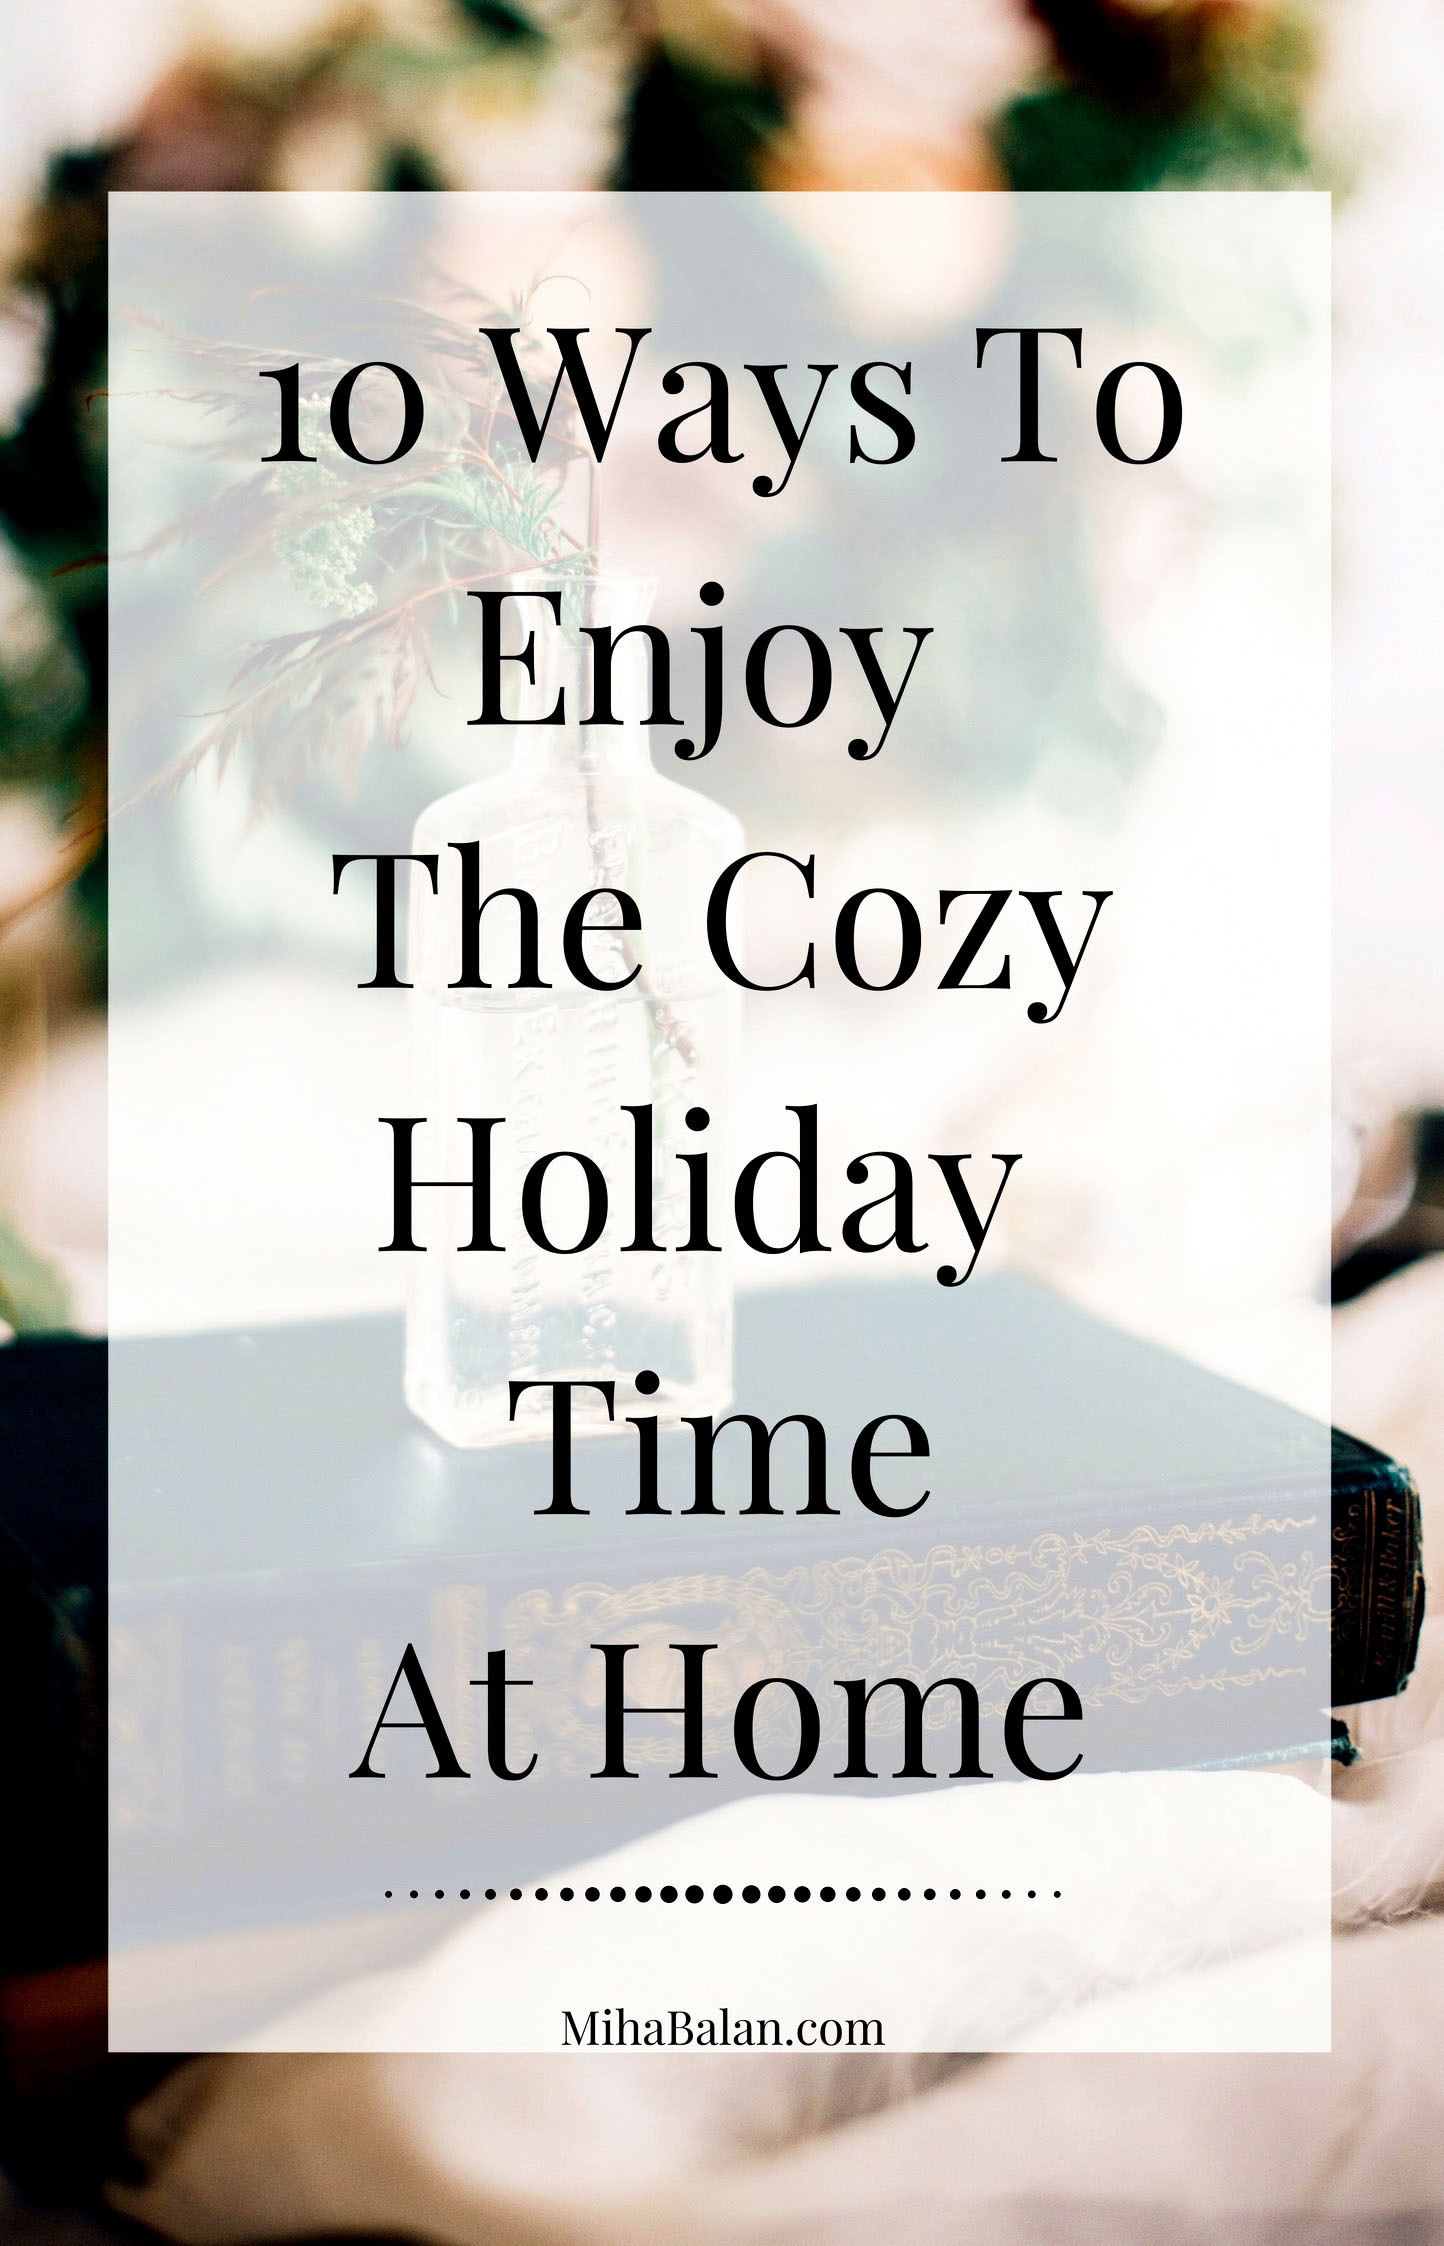 10 Ways To Enjoy The Cozy Holiday TimeAt Home-2